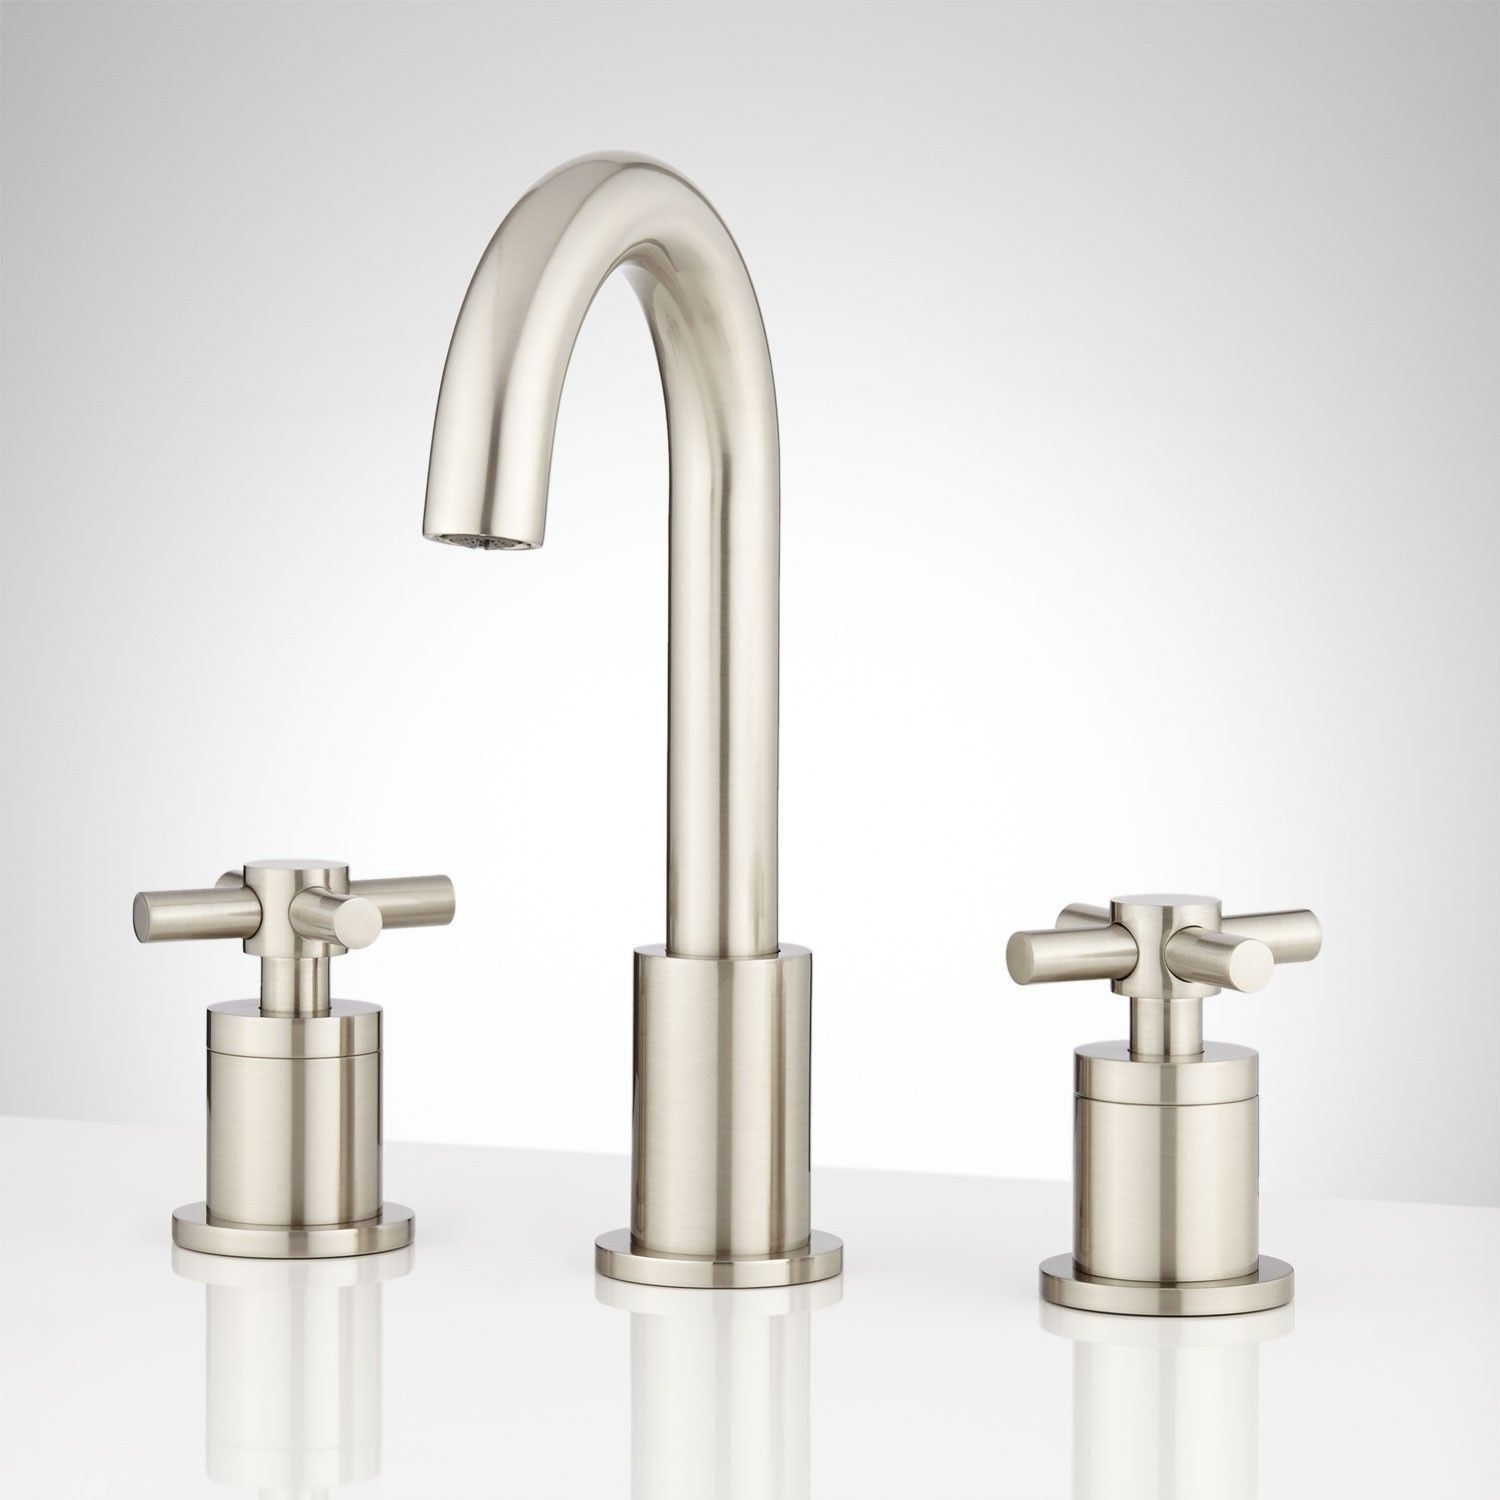 Fresh Oil Rubbed Bronze Bathroom Faucet Clearance Check More At Https Homefurnitureone